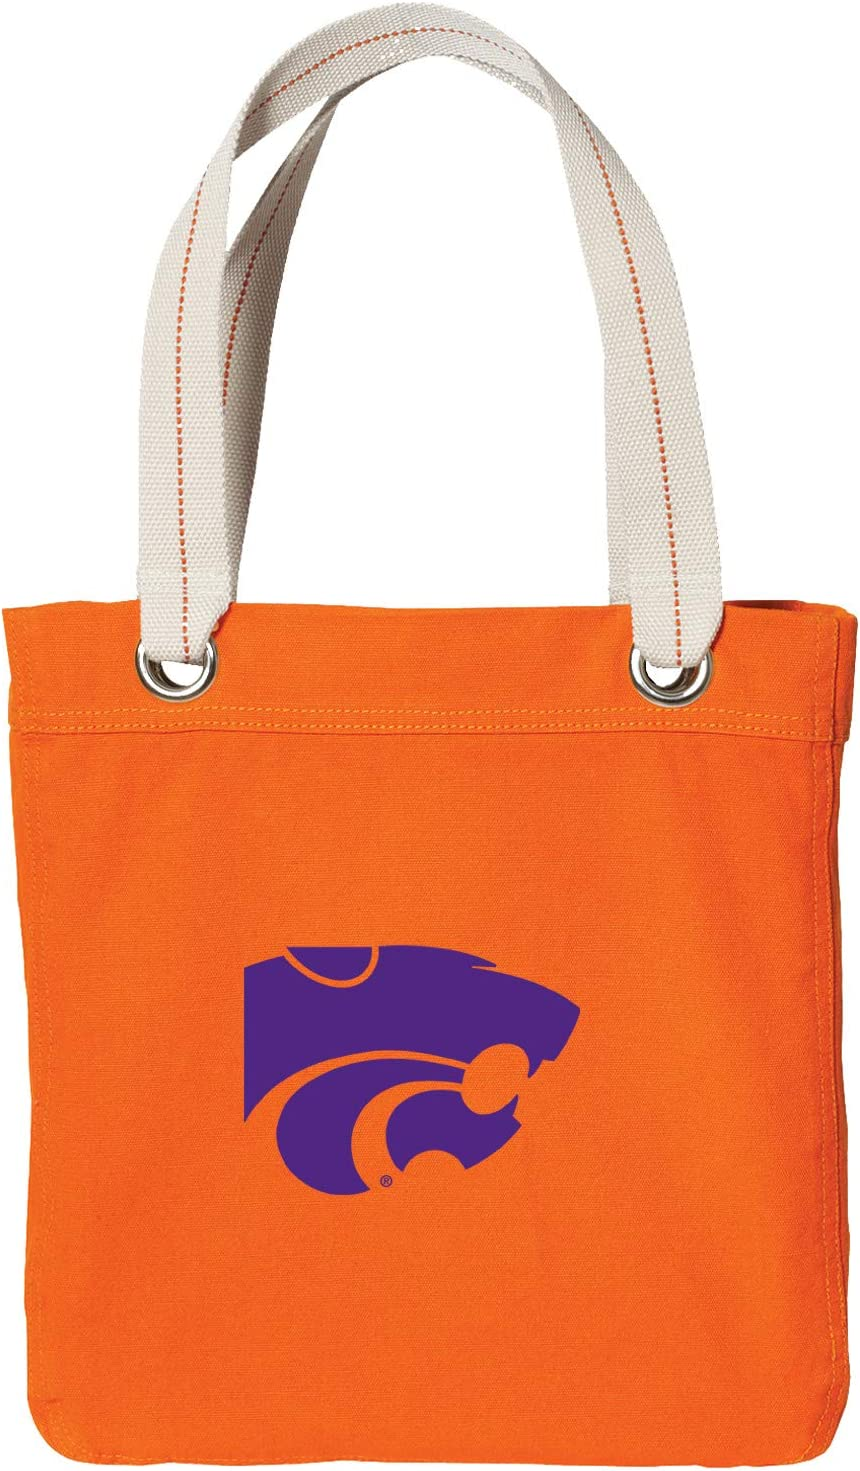 Denver Mall Broad Bay K-State Tote Bag Rich Canvas Dye Washed Orange Cotton Max 84% OFF